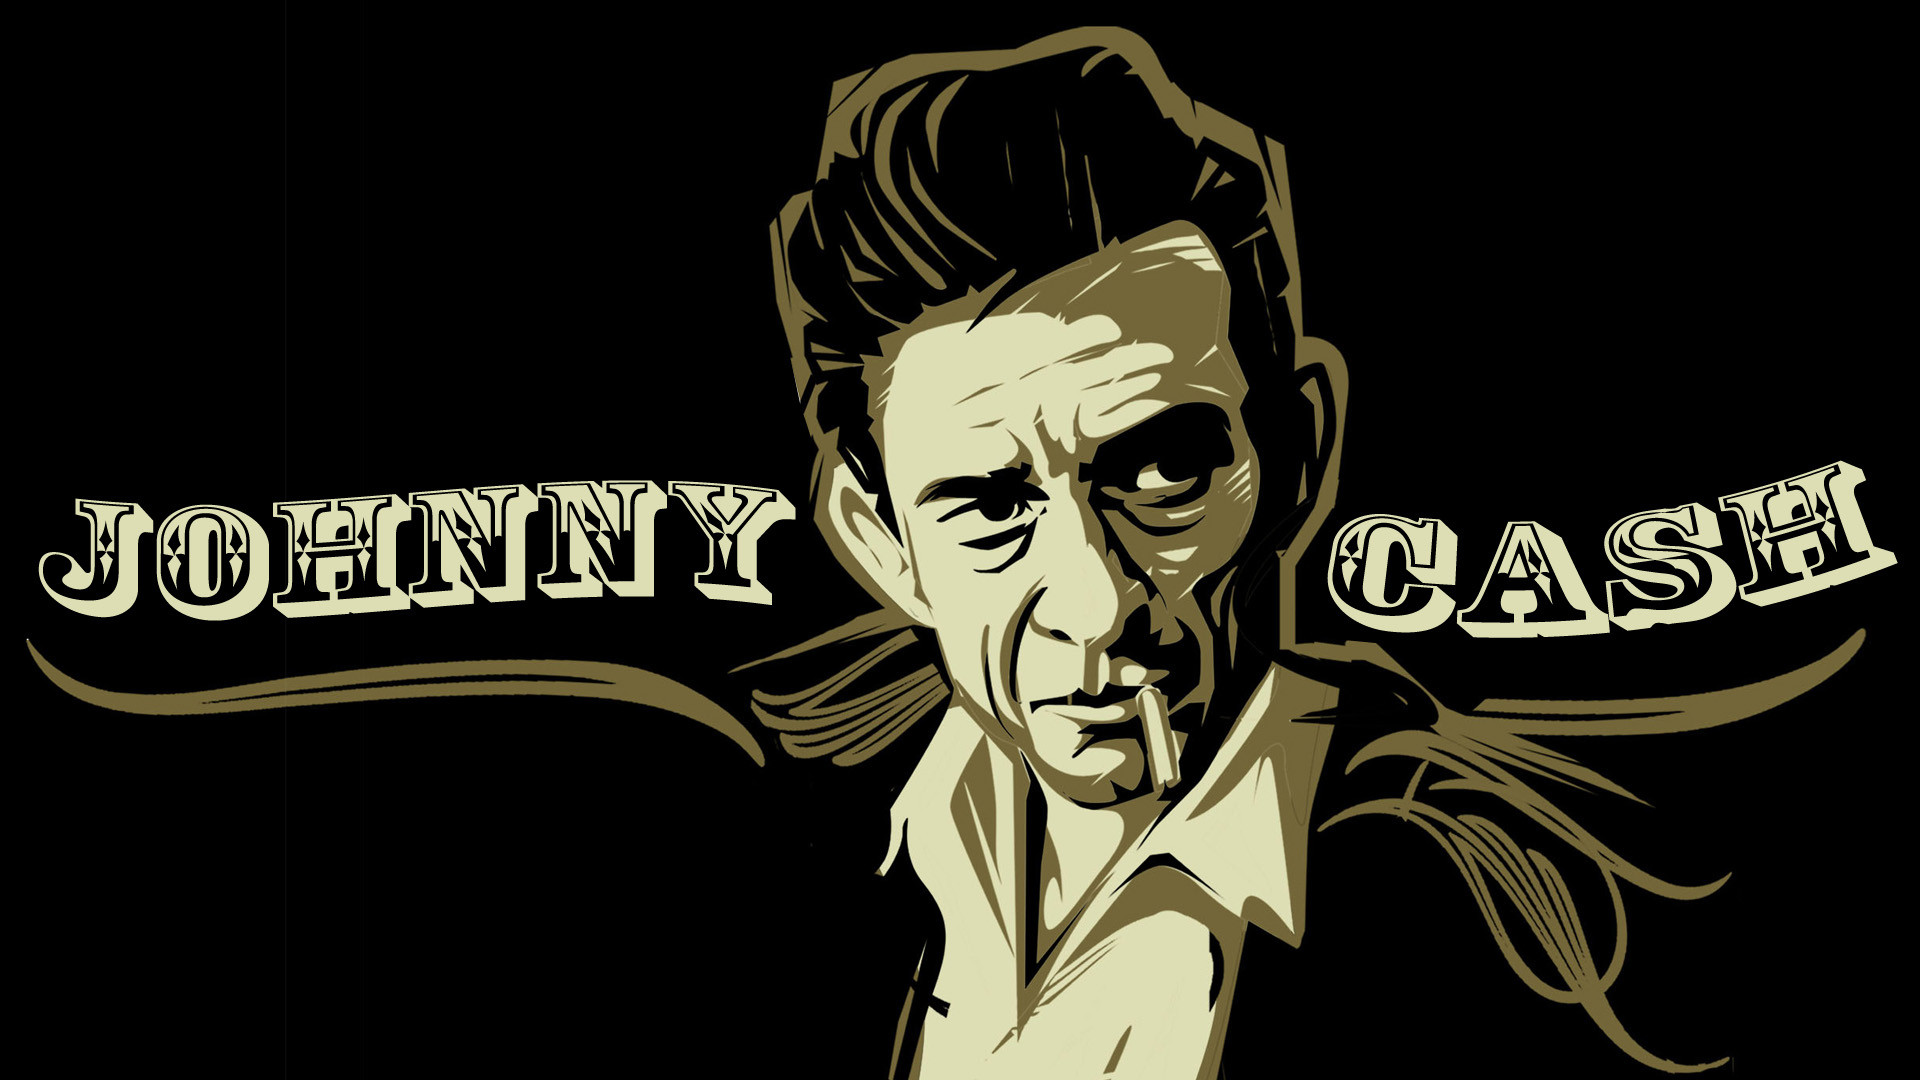 Johnny Cash Wallpapers High Resolution And Quality Download